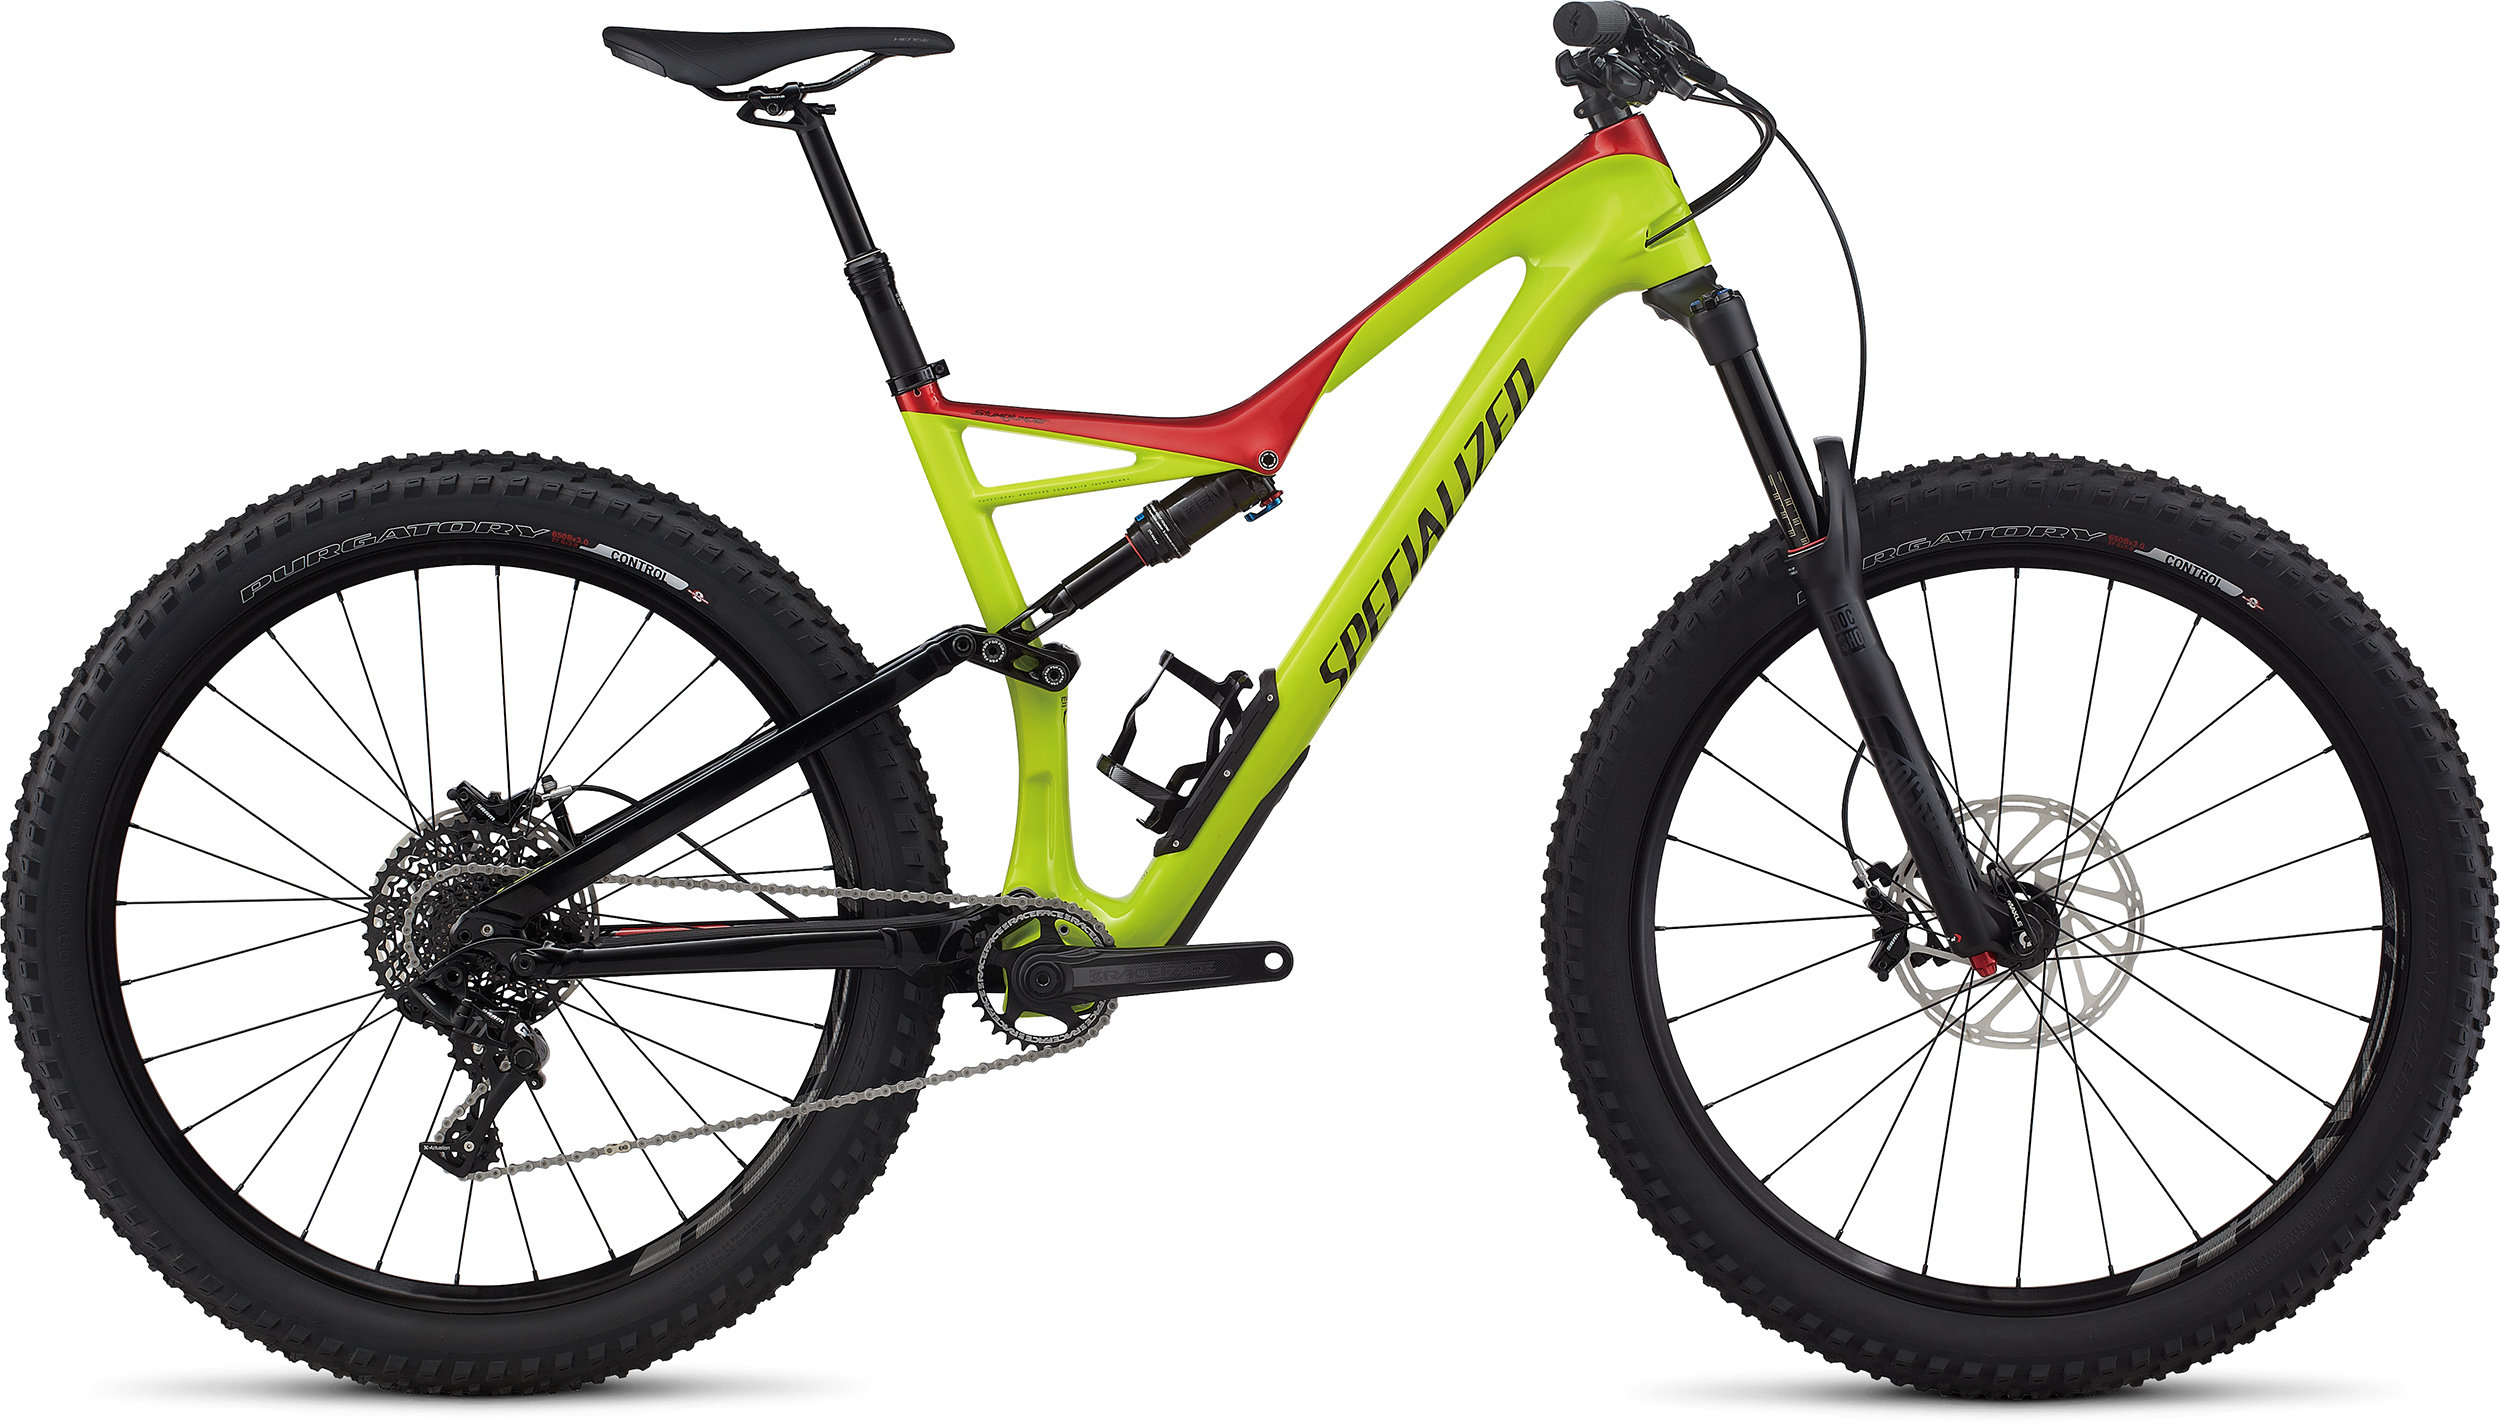 SPECIALIZED SJ FSR COMP CARBON 6FATTIE HYP/CNDYRED/BLK L - Bike Zone